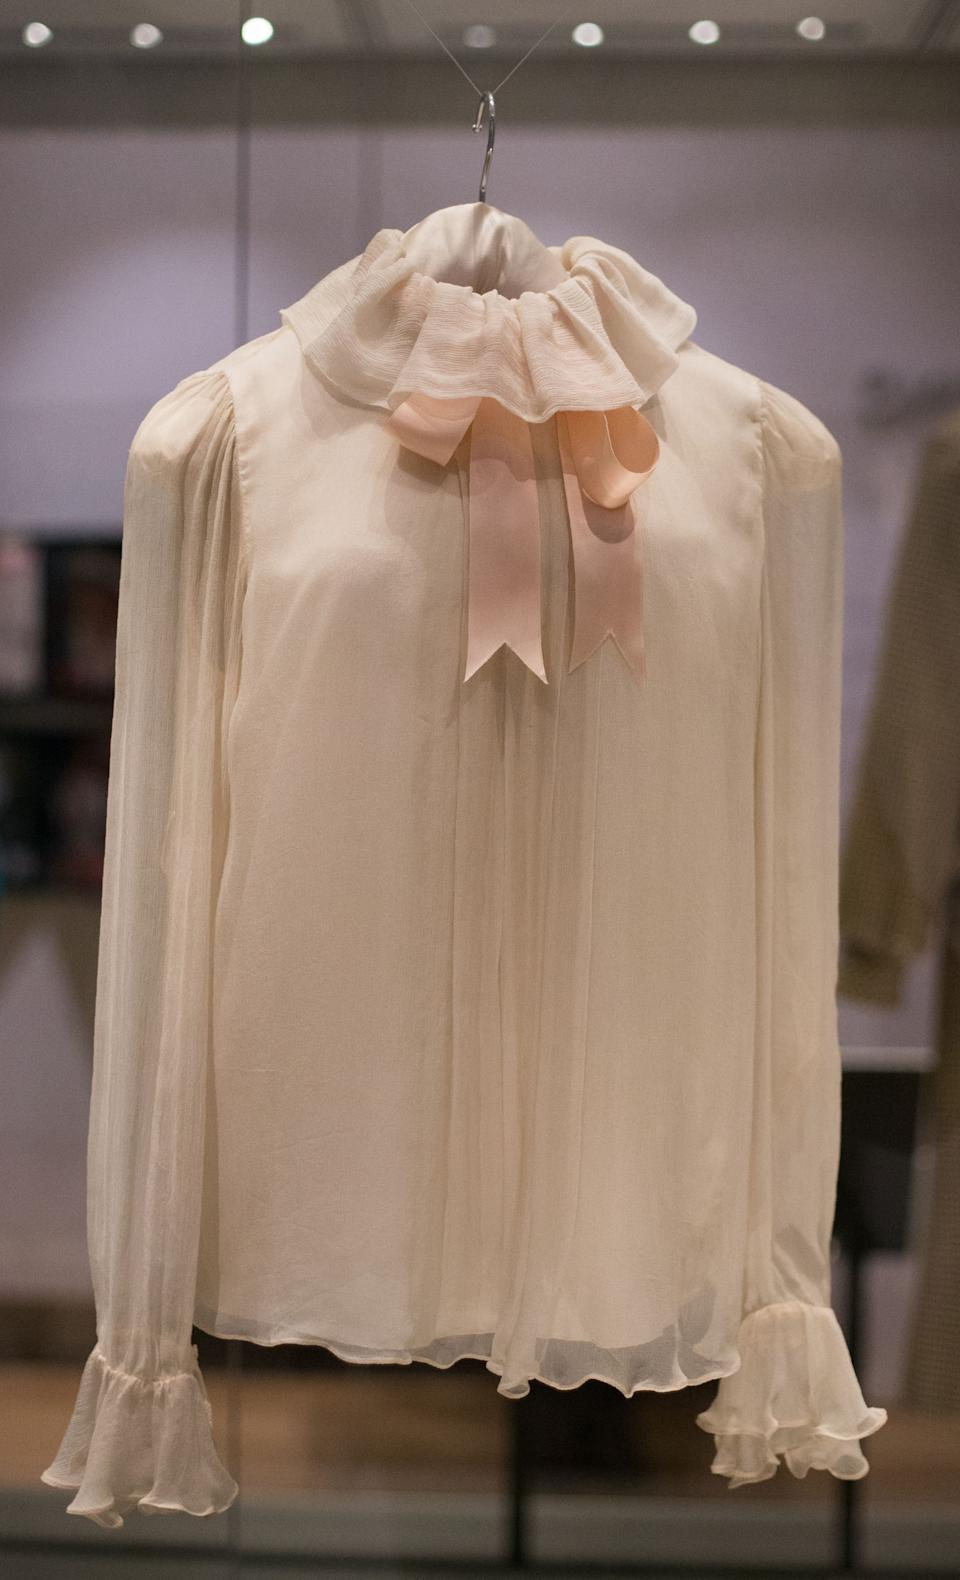 """A chiffon blouse by the designer Emanuel, and worn by Princess Diana, at her first official portrait by Lord Snowdon, consequently published in Vogue in February 1981, is pictured during a press preview of the forthcoming exhibition entitled """"Diana: Her Fashion Story"""", at Kensington Palace in London on February 22, 2017. Glittering gowns, elegant suits and bold mini-dresses worn by the late Princess Diana will go on show from Friday on the 20th anniversary of her death in a unique exhibition charting her style reign. """"Diana: Her Fashion Story"""" follows her evolution from the demure outfits of her first public appearances to the glamourous gowns of her later life and is being hosted in Kensington Palace, her London residence. / AFP / Daniel LEAL-OLIVAS        (Photo credit should read DANIEL LEAL-OLIVAS/AFP via Getty Images)"""